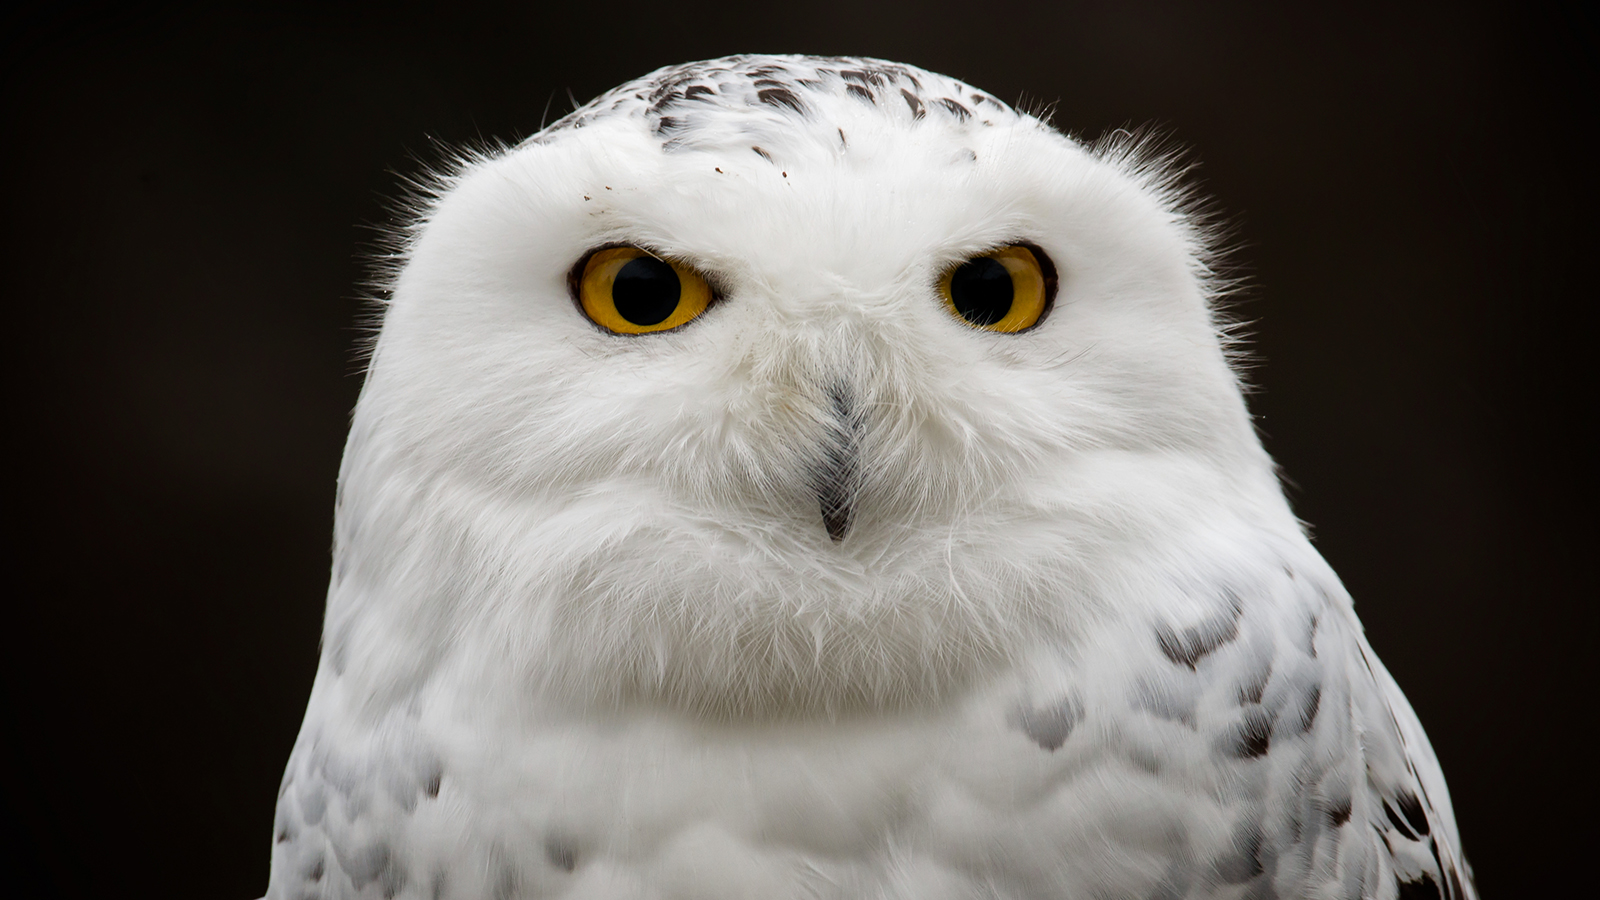 HQ Snowy Owl Wallpapers | File 749.7Kb